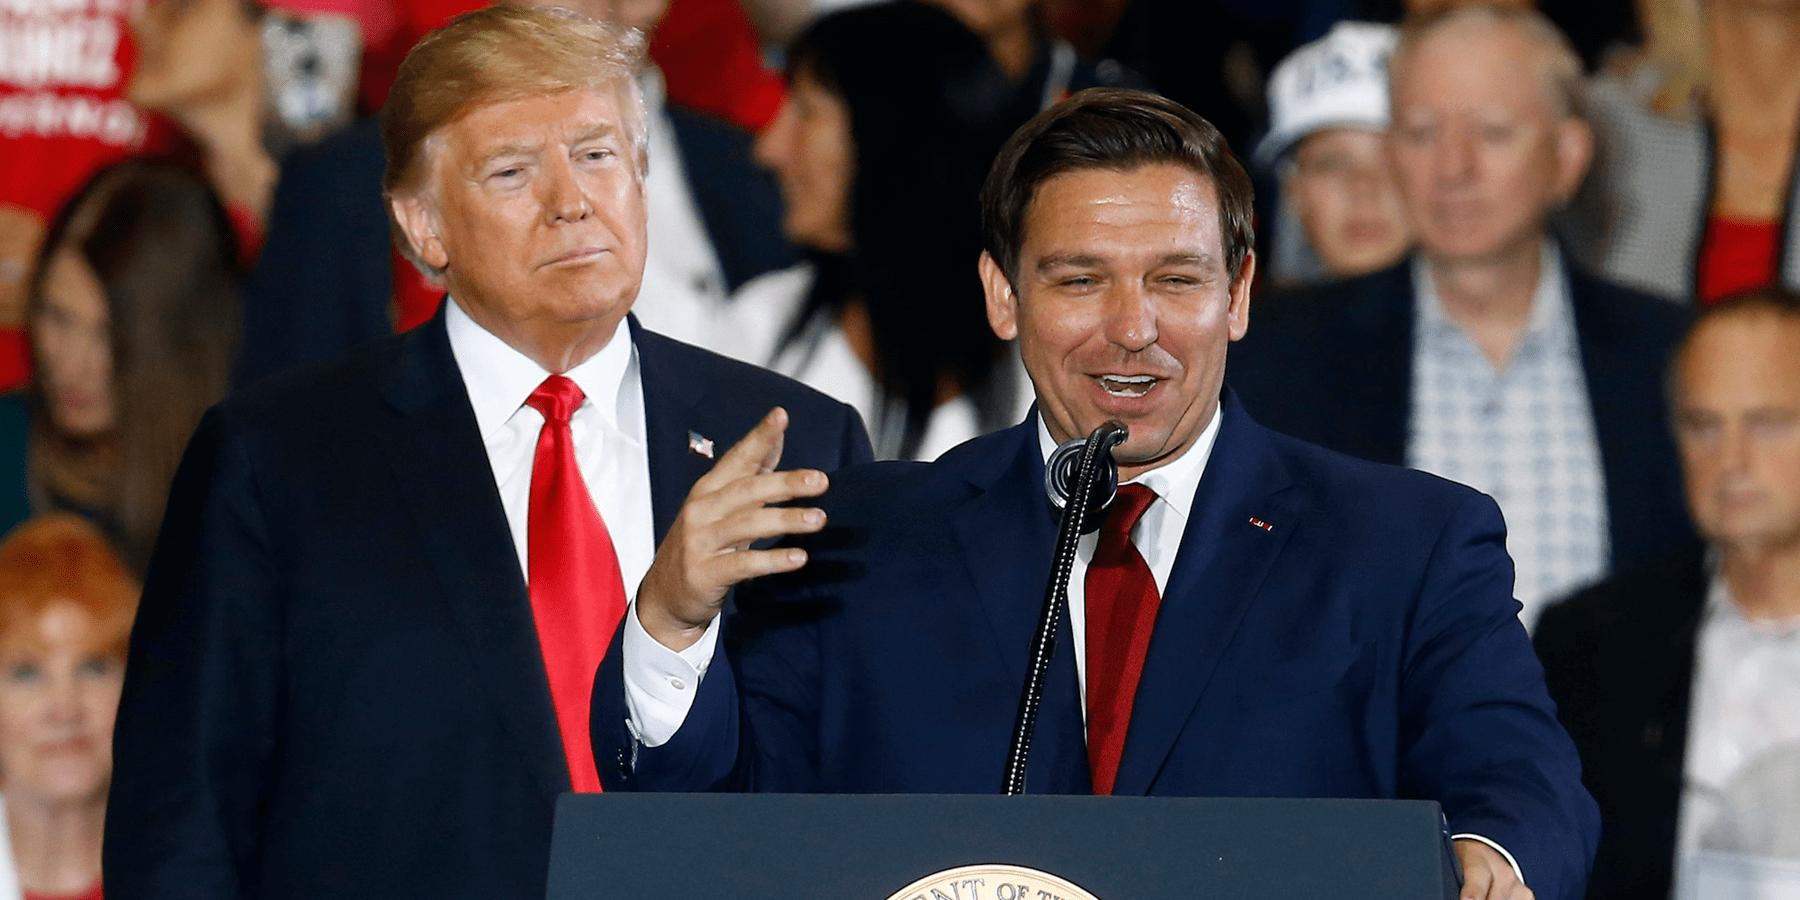 President Donald Trump Weighs In On Florida Gov. Ron DeSantis's Decision To Reopen Schools Despite The Fact That More Than 16,000 People Are Infected In The State